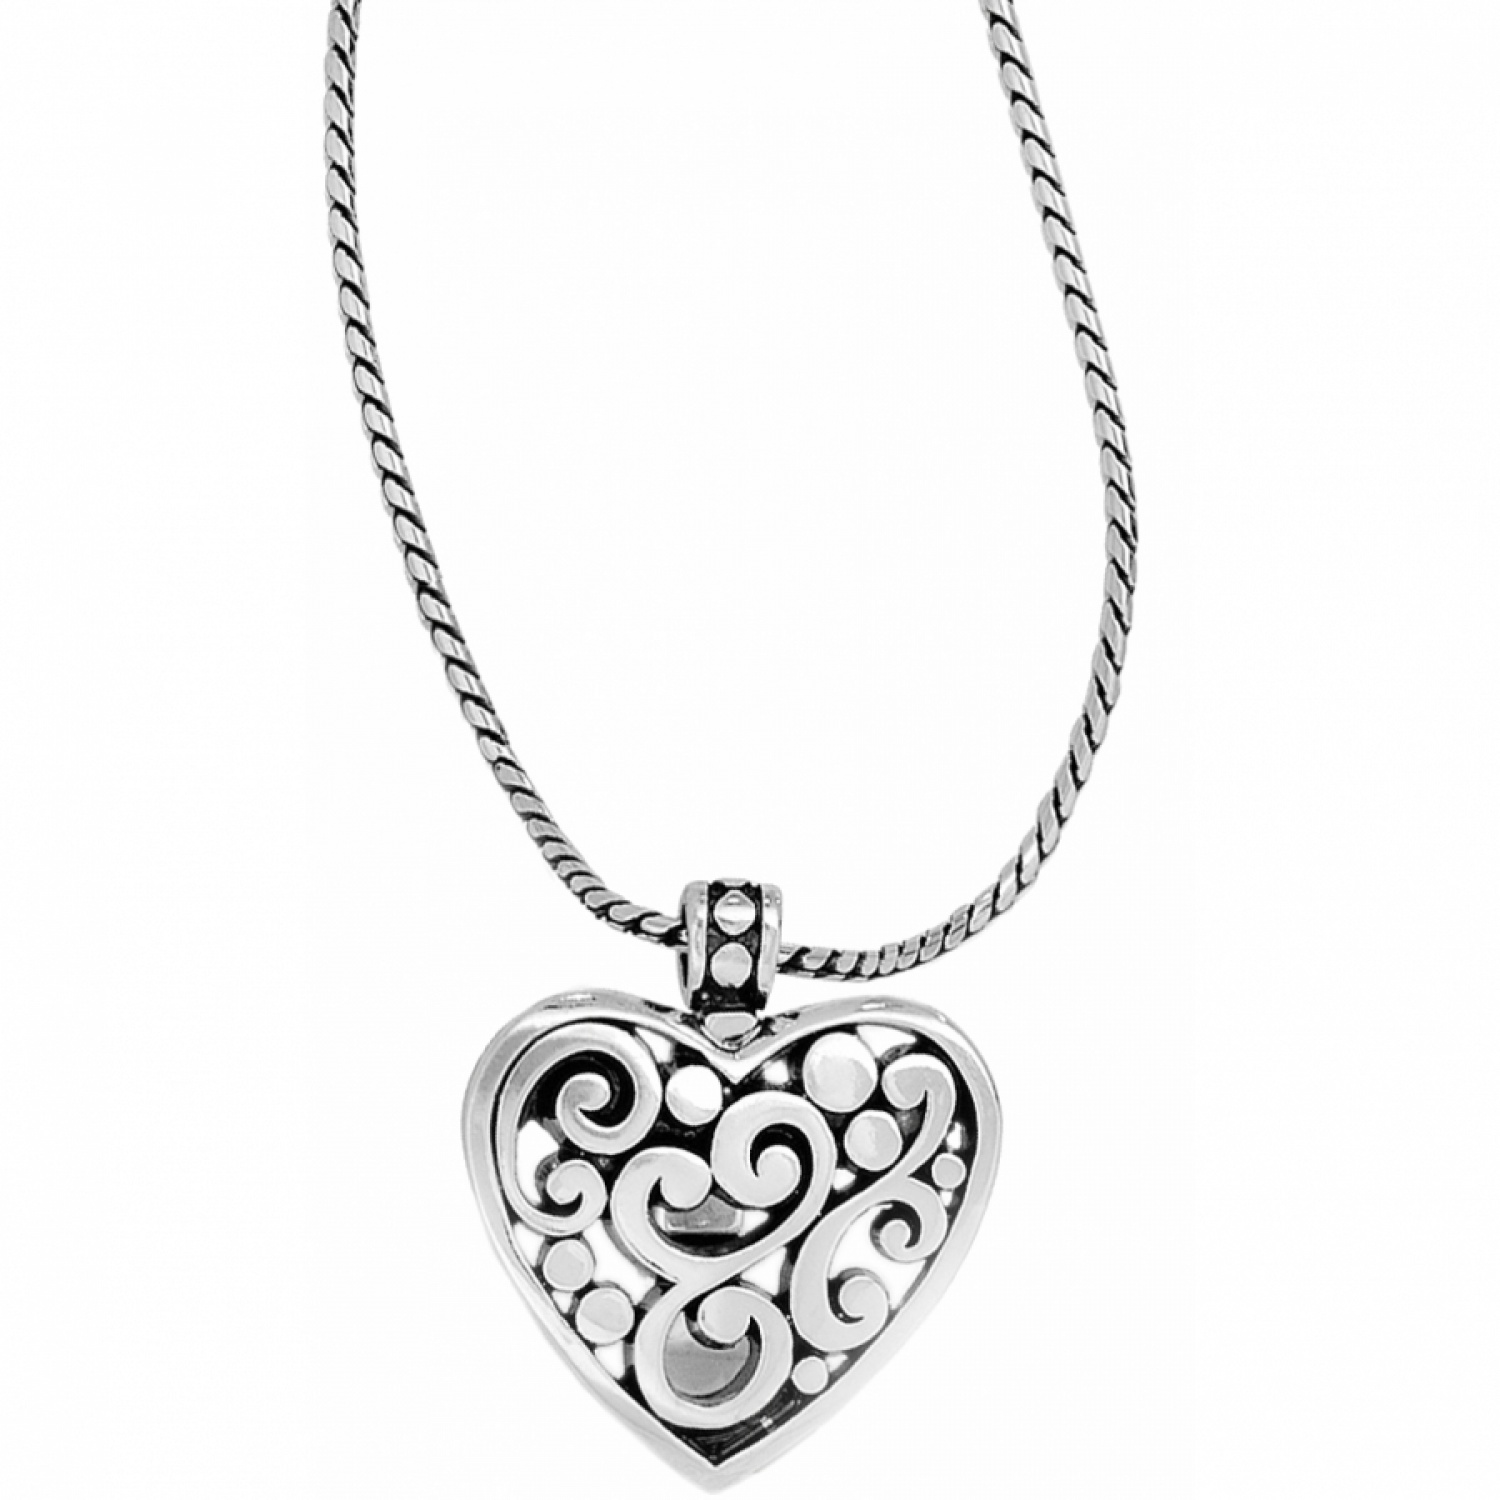 Jewelry brighton fashion jewelry for women online jewelry stores contempo heart badge clip necklace aloadofball Gallery